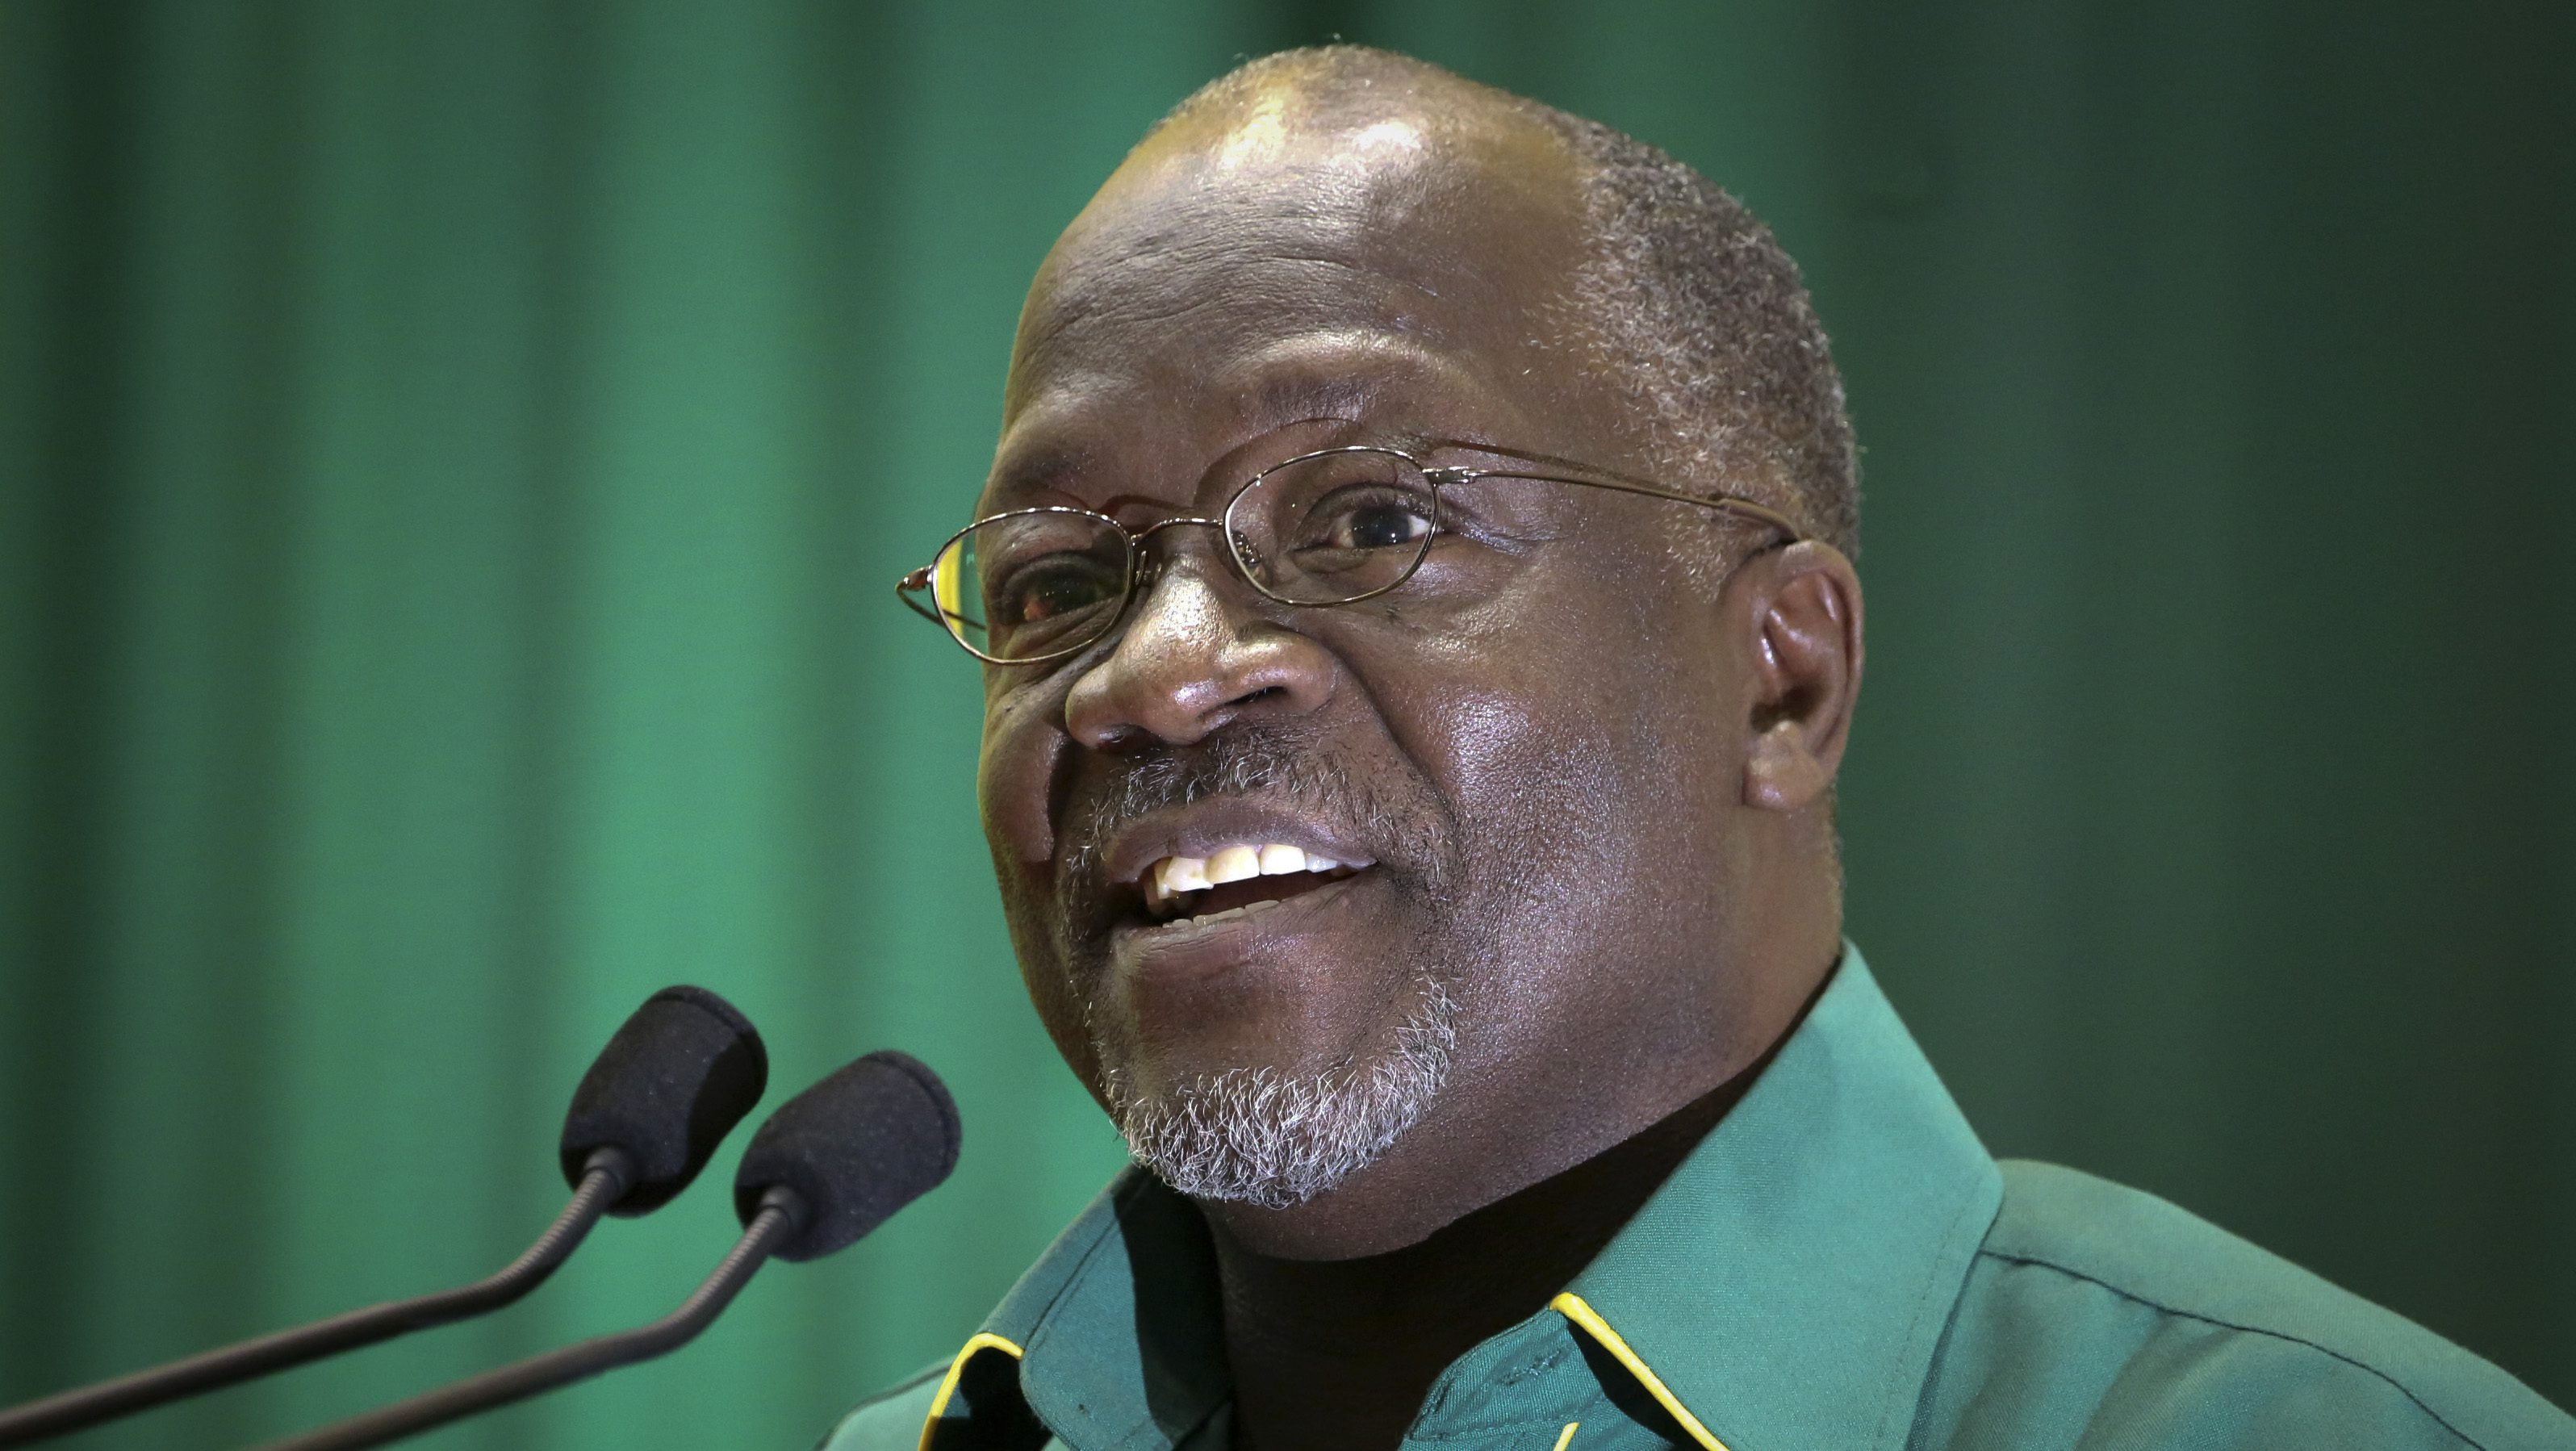 FILE - In this Saturday, July 11, 2015 file photo, Tanzania's presidential candidate John Magufuli speaks at an internal party poll to decide the ruling Chama Cha Mapinduzi (CCM) party's presidential candidate, which they later chose him to be, in Dodoma, Tanzania. Tanzania's election commission declared Thursday, Oct. 29, 2015 that John Pombe Magufuli of the ruling party was the winner of the country's presidential election.